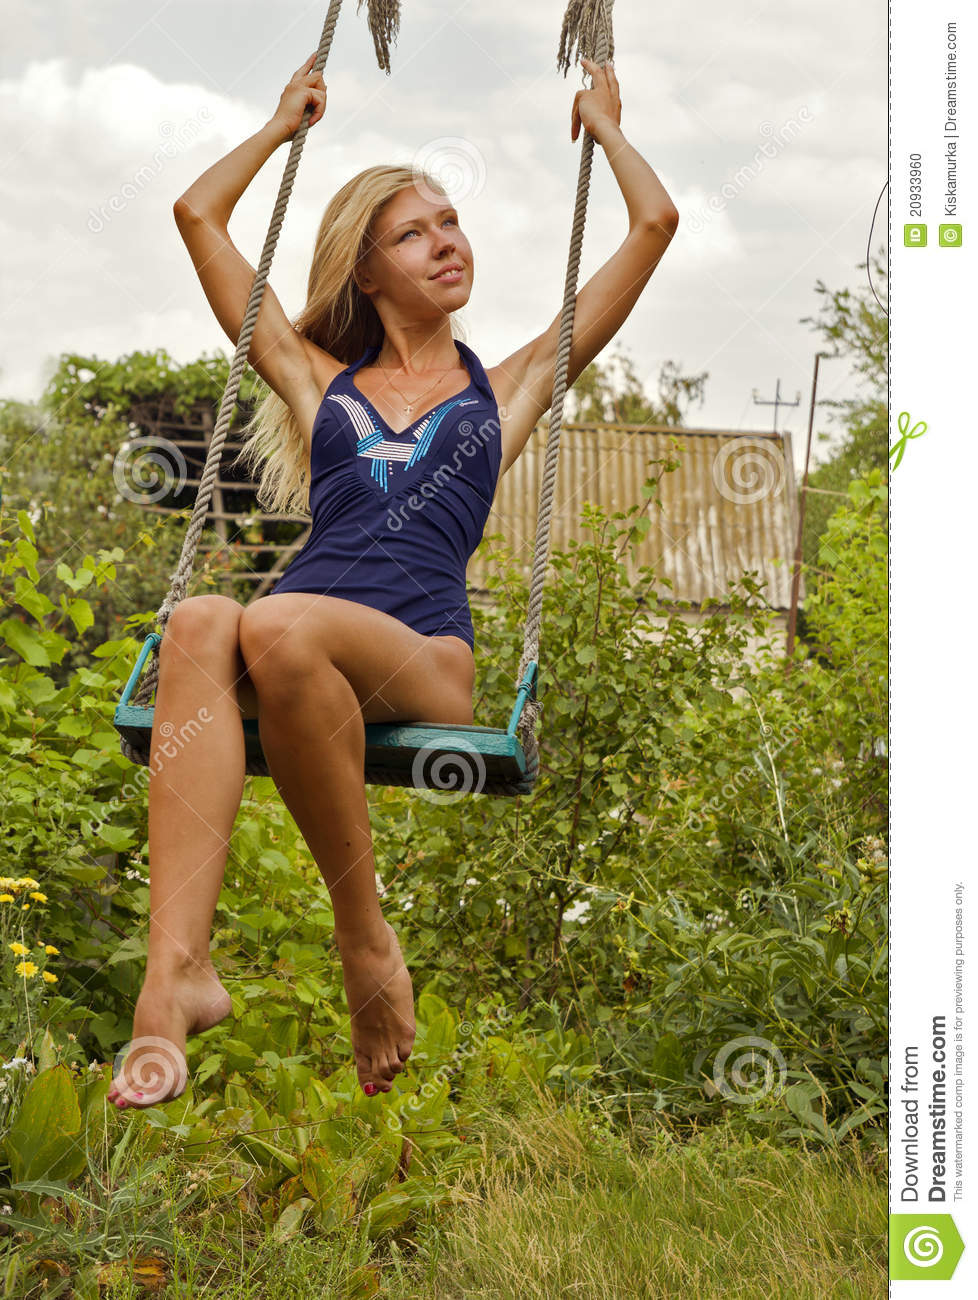 La belle fille dans un maillot de bain sur une oscillation photo stock image 20933960 for Photo dans un bain